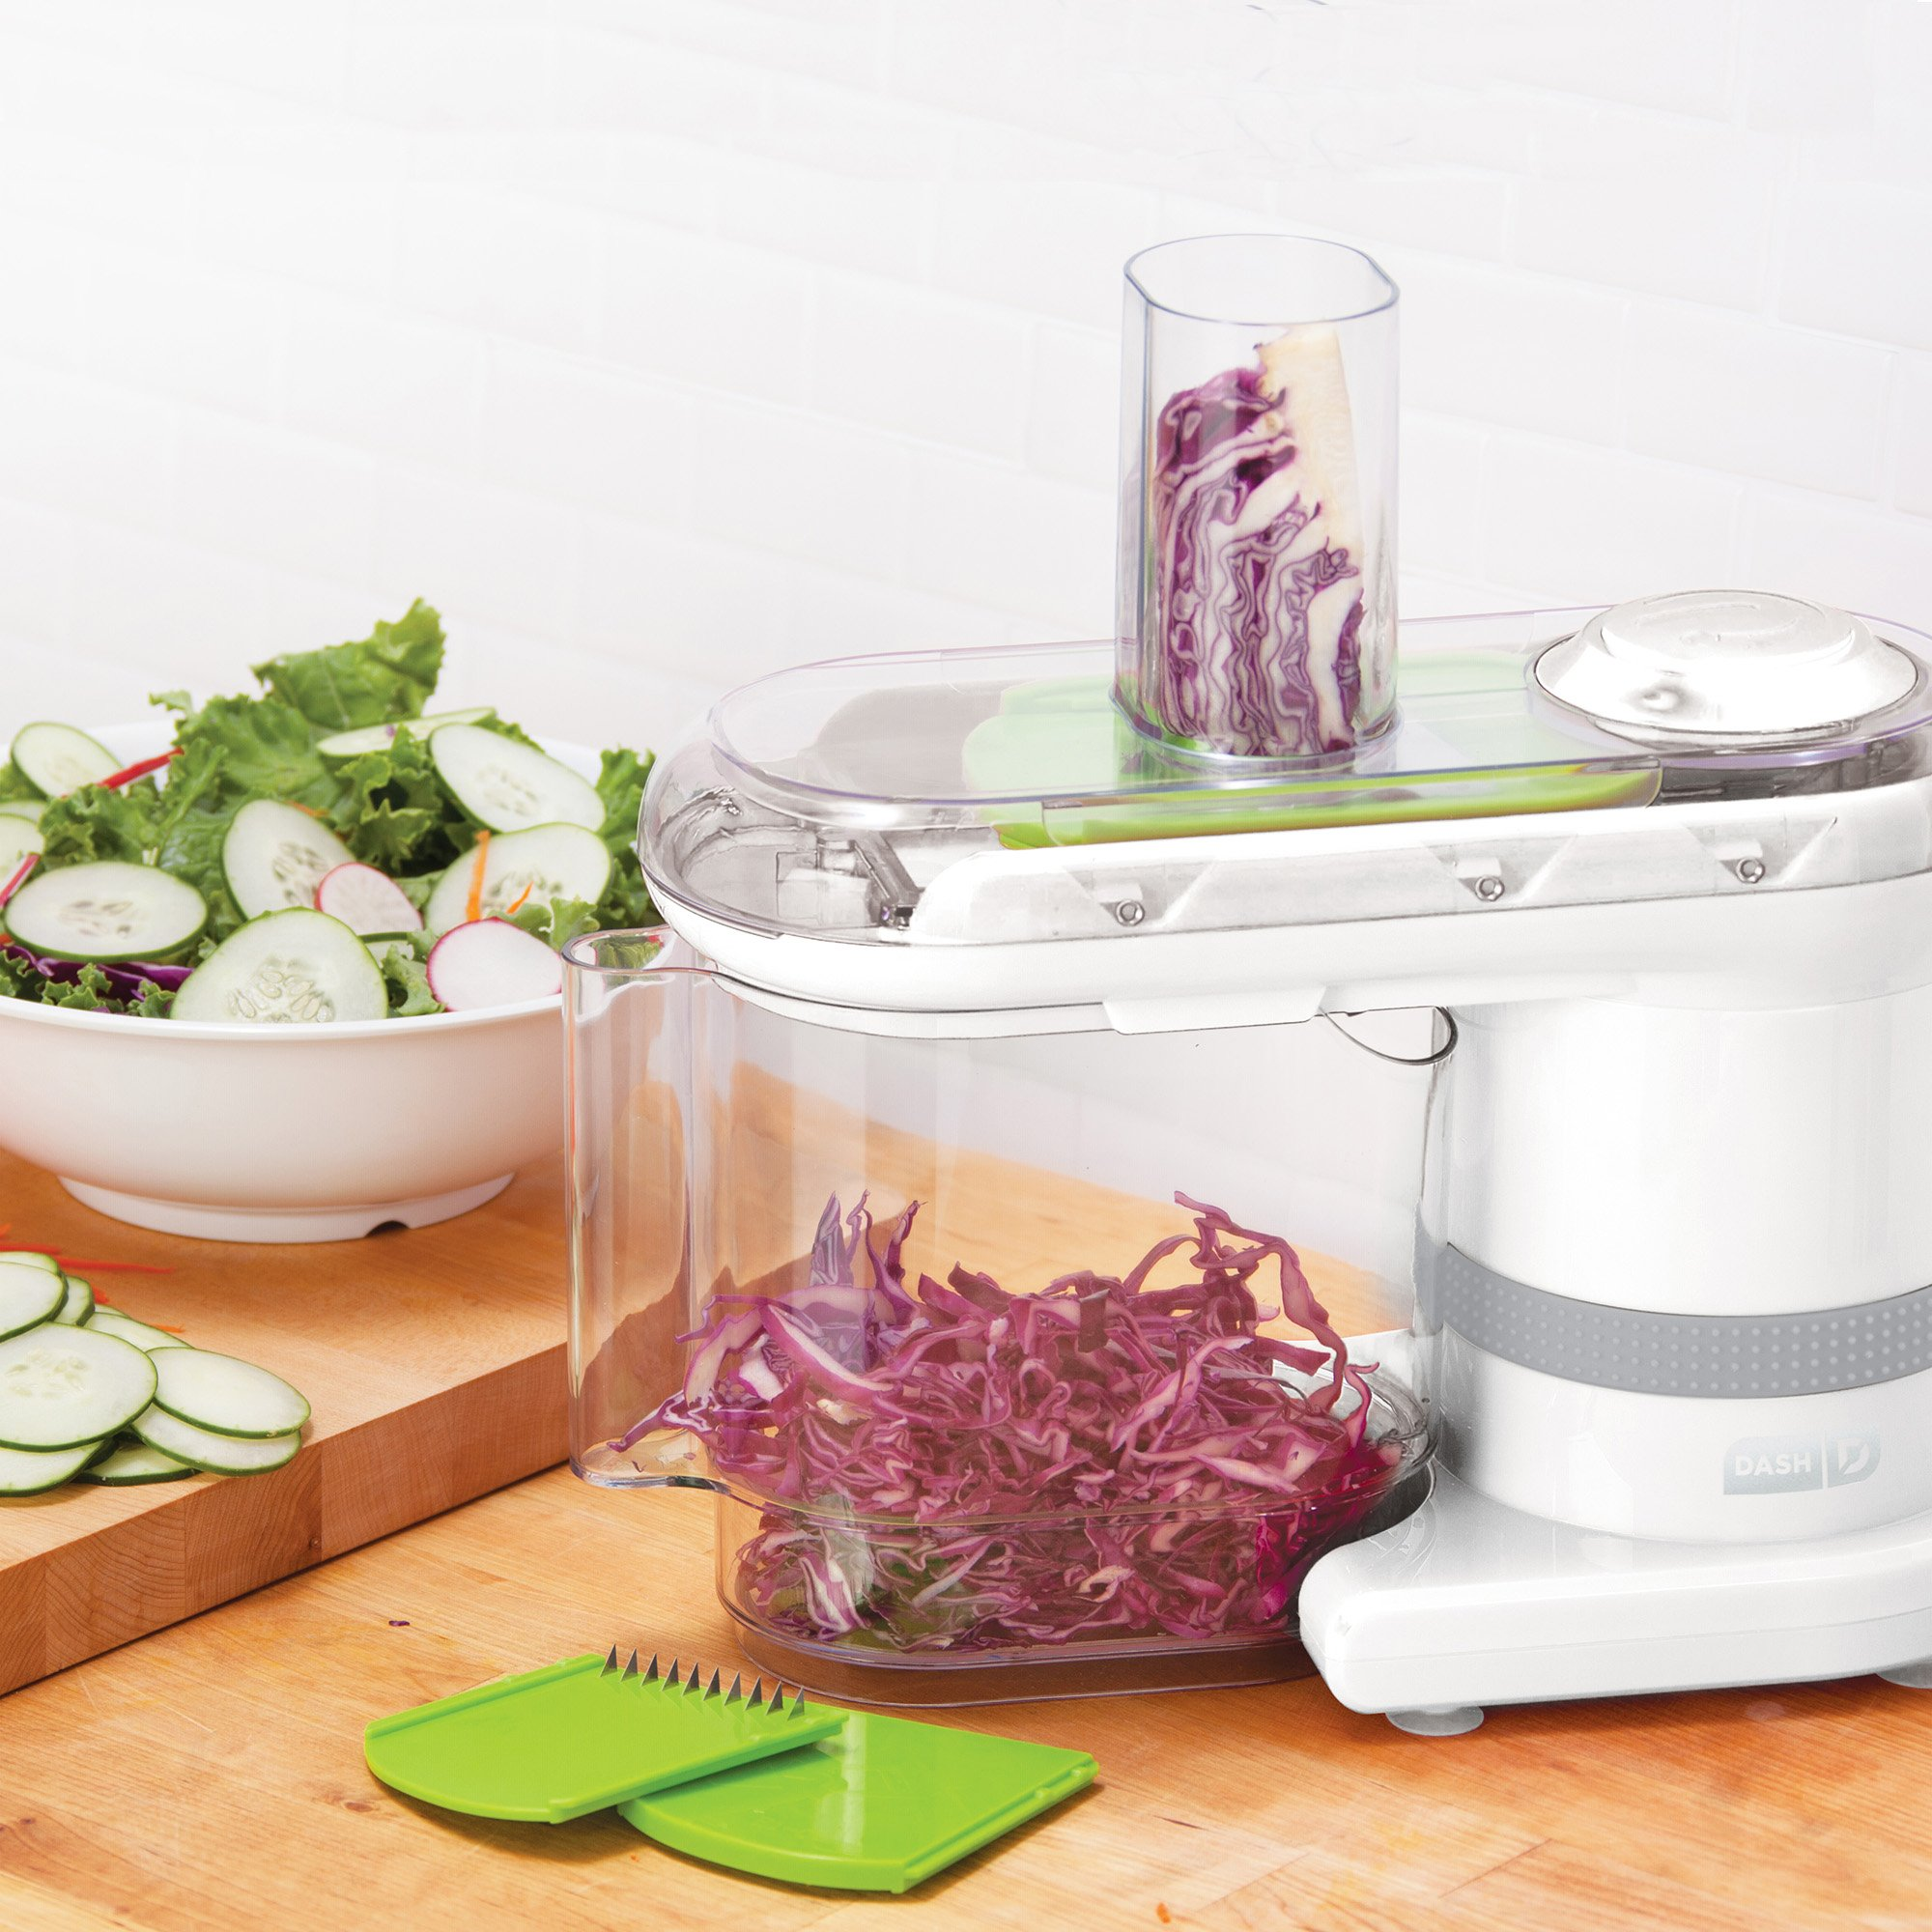 Dash Electric Mandoline & Food Slicer, White by DASH